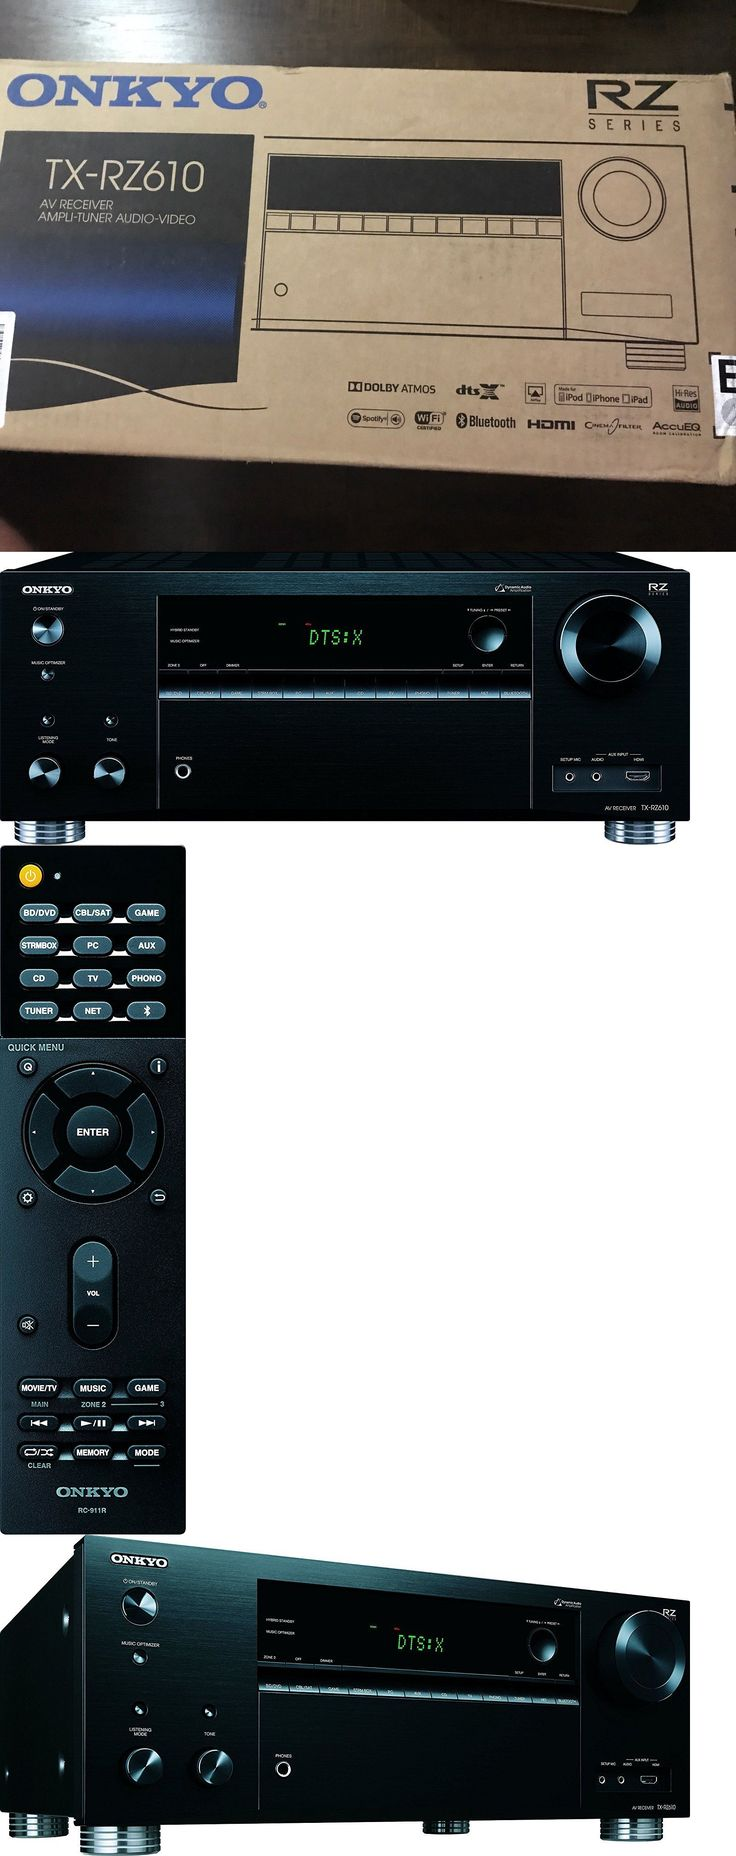 Home Theater Receivers: Onkyo Tx-Rz610 7.2 Channel Network A V Receiver Brand New!!! -> BUY IT NOW ONLY: $439.99 on eBay!